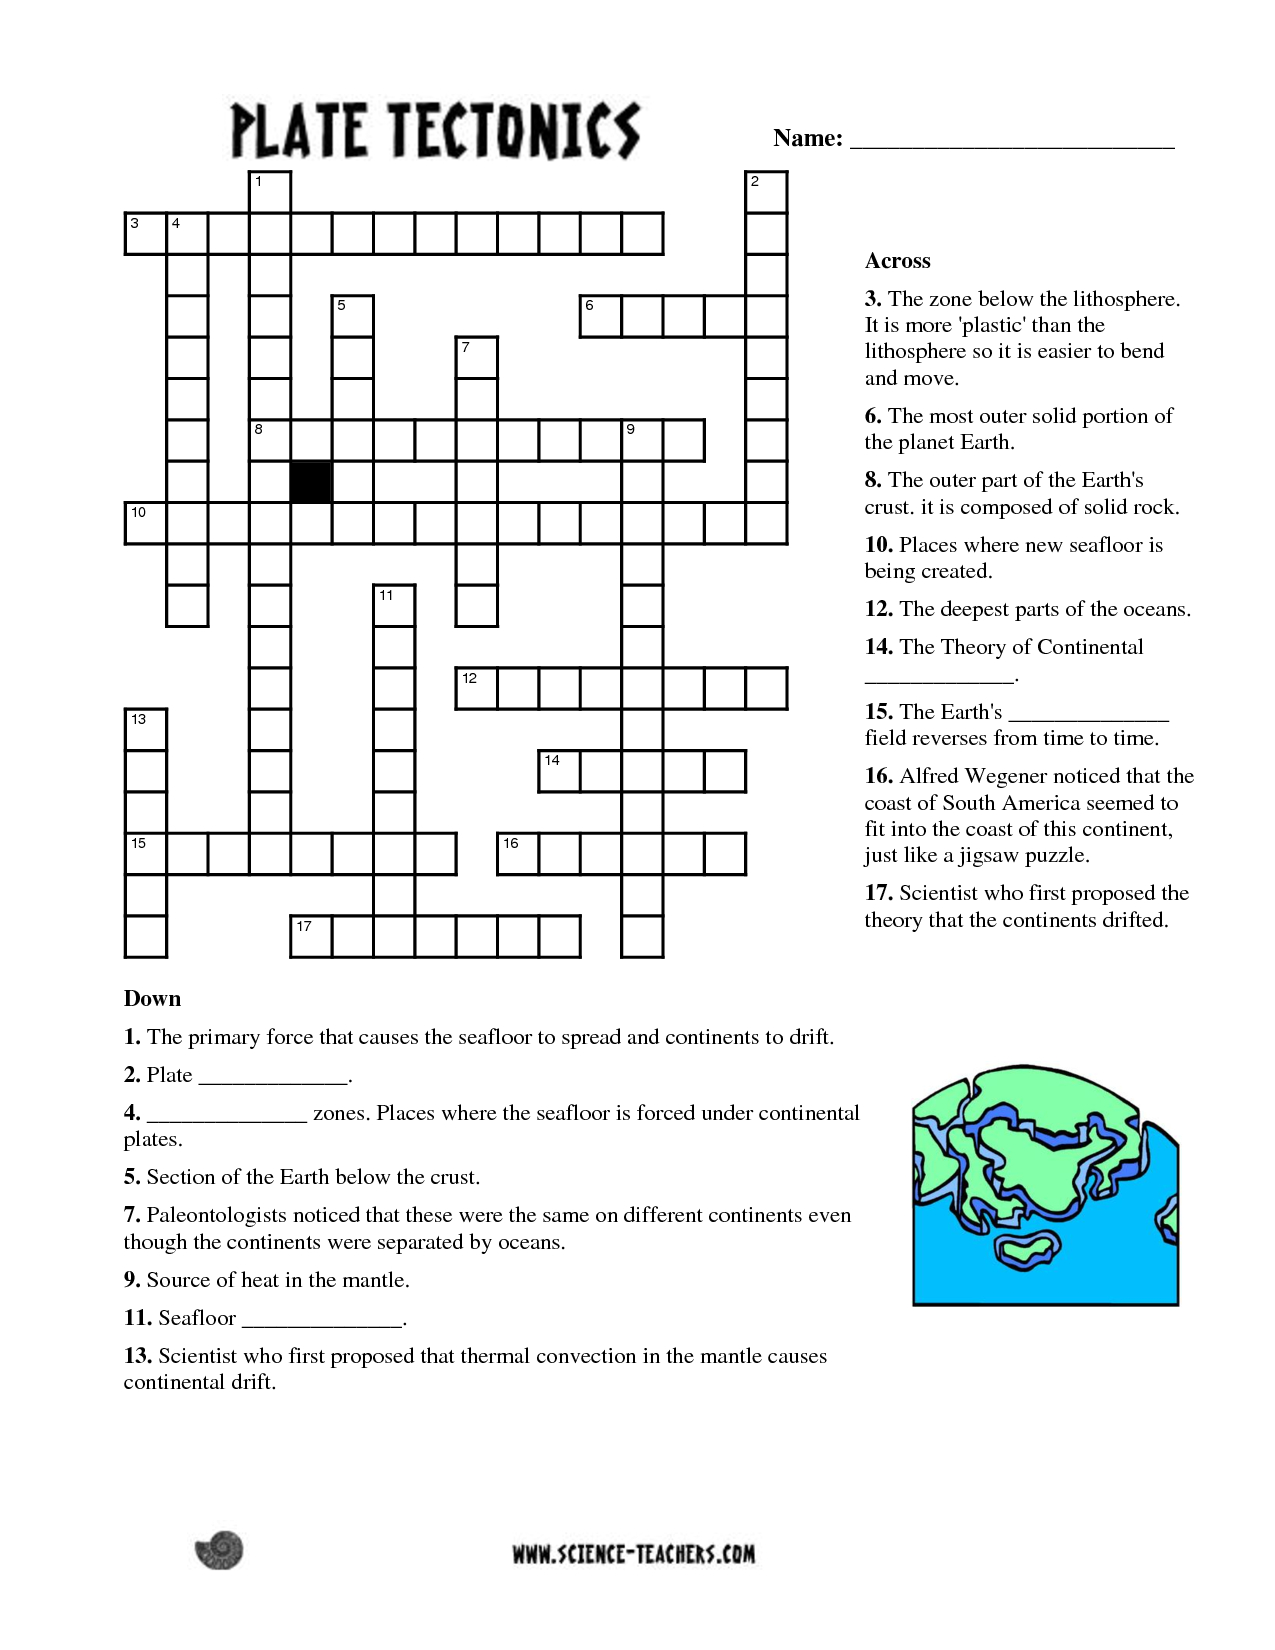 Planets Crossword Puzzle Worksheet - Pics About Space | Fun Science - Printable Ocean Crossword Puzzles